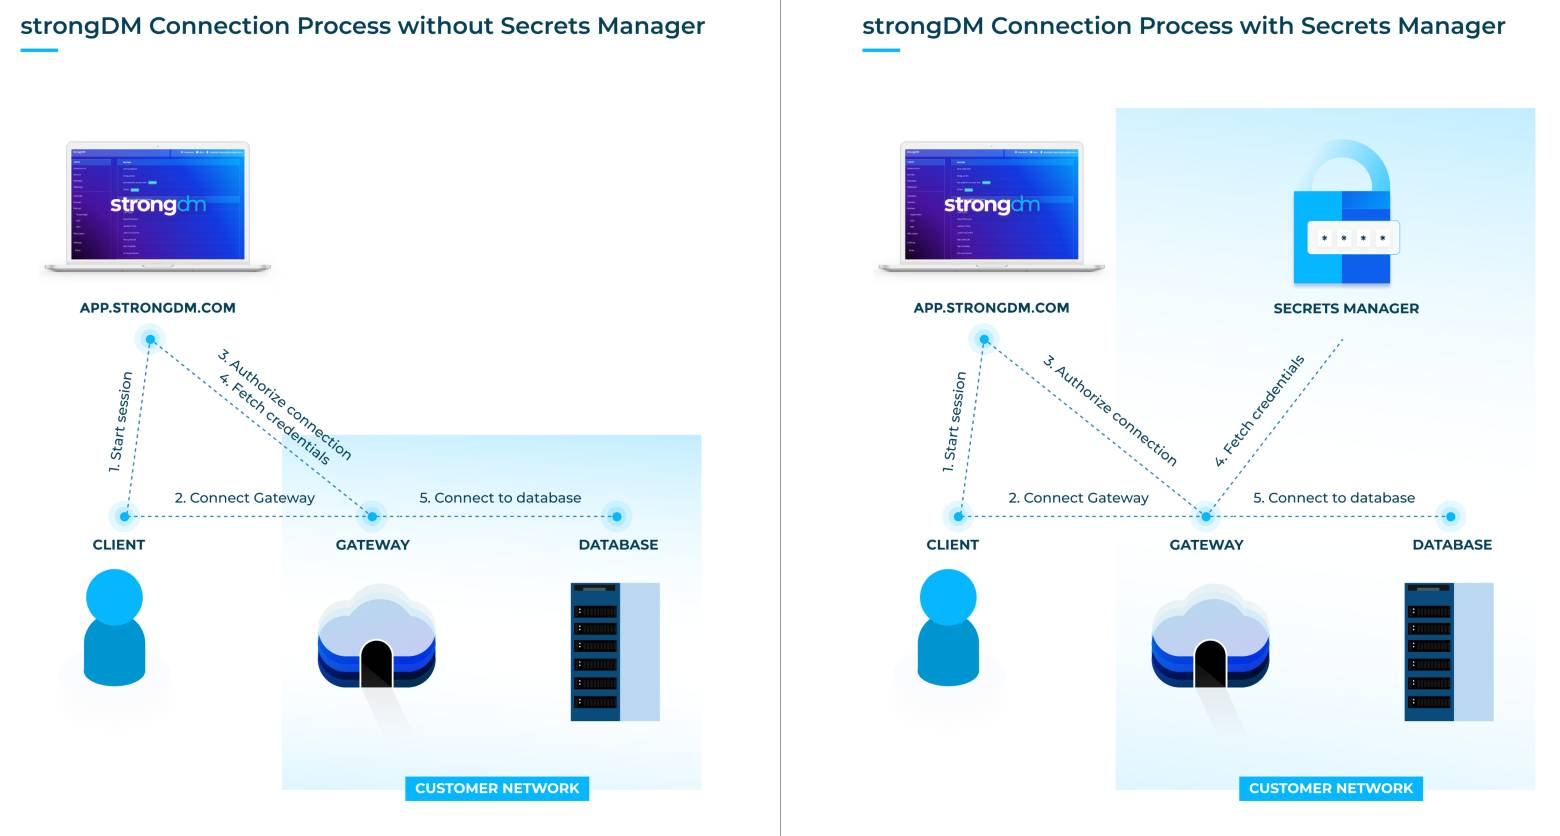 strongDM works with your secrets manager